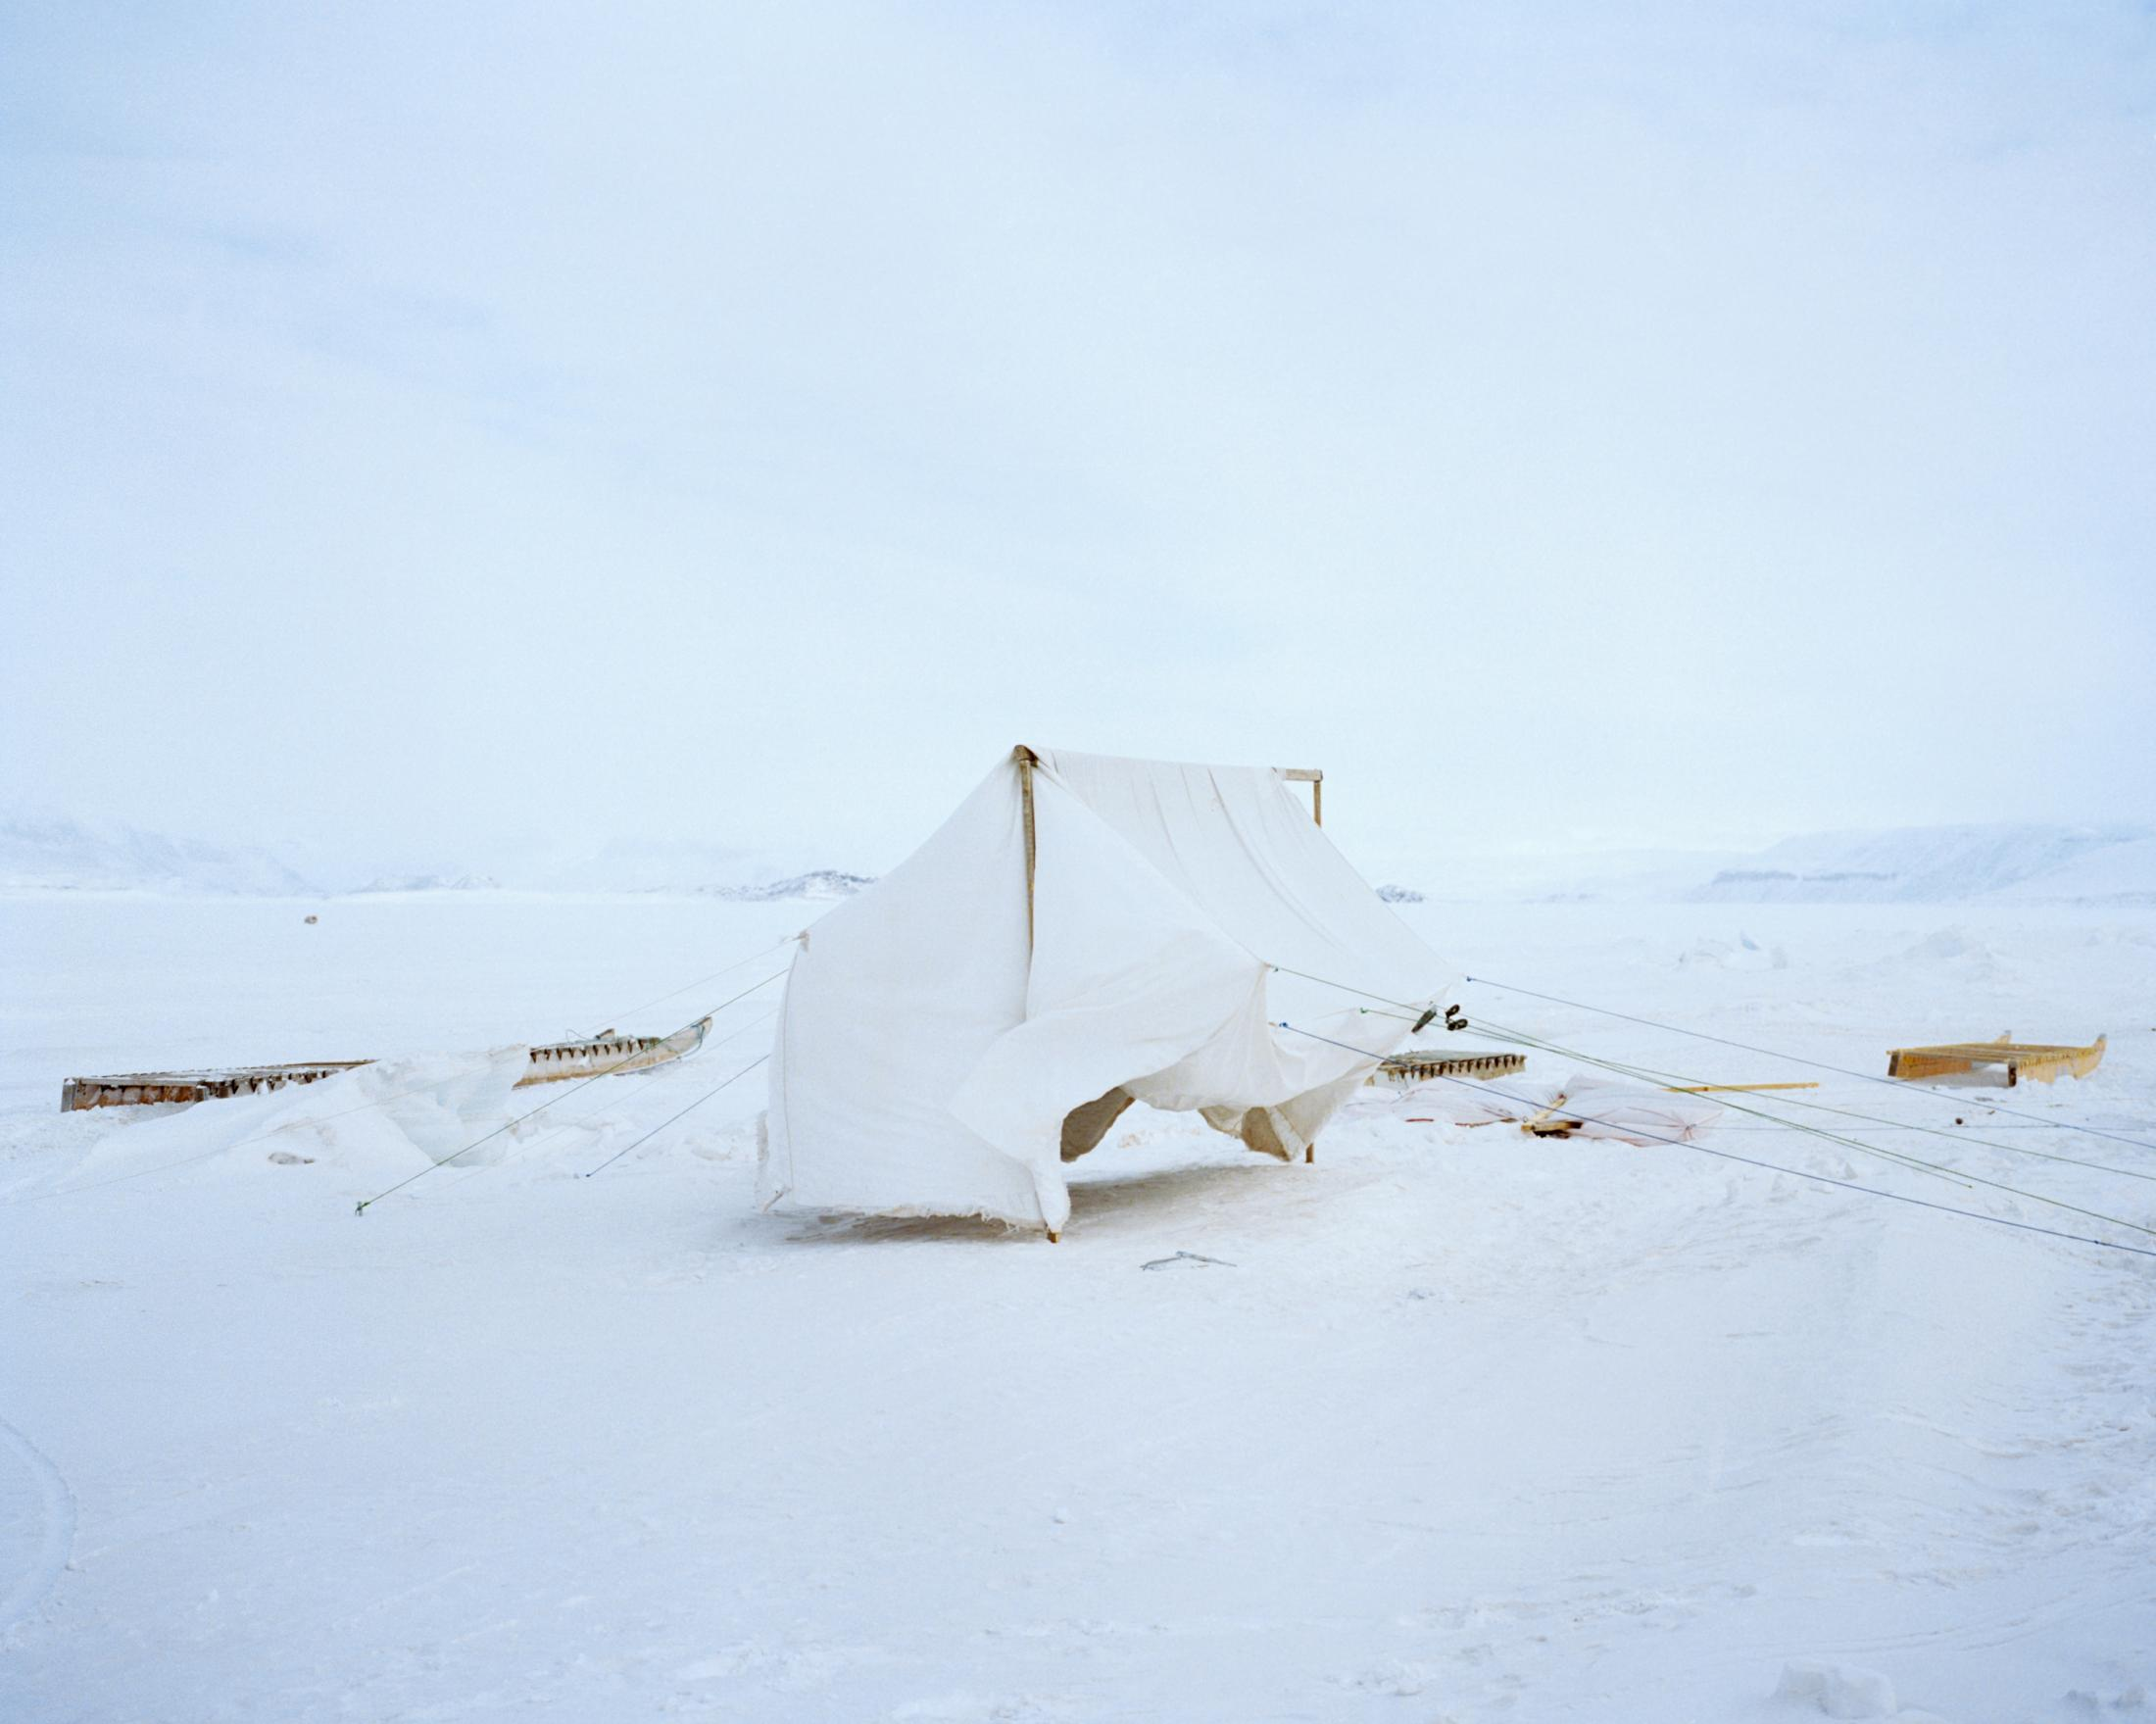 Before a camping trip, a homemade tent dries on the sea ice in Nunavut.